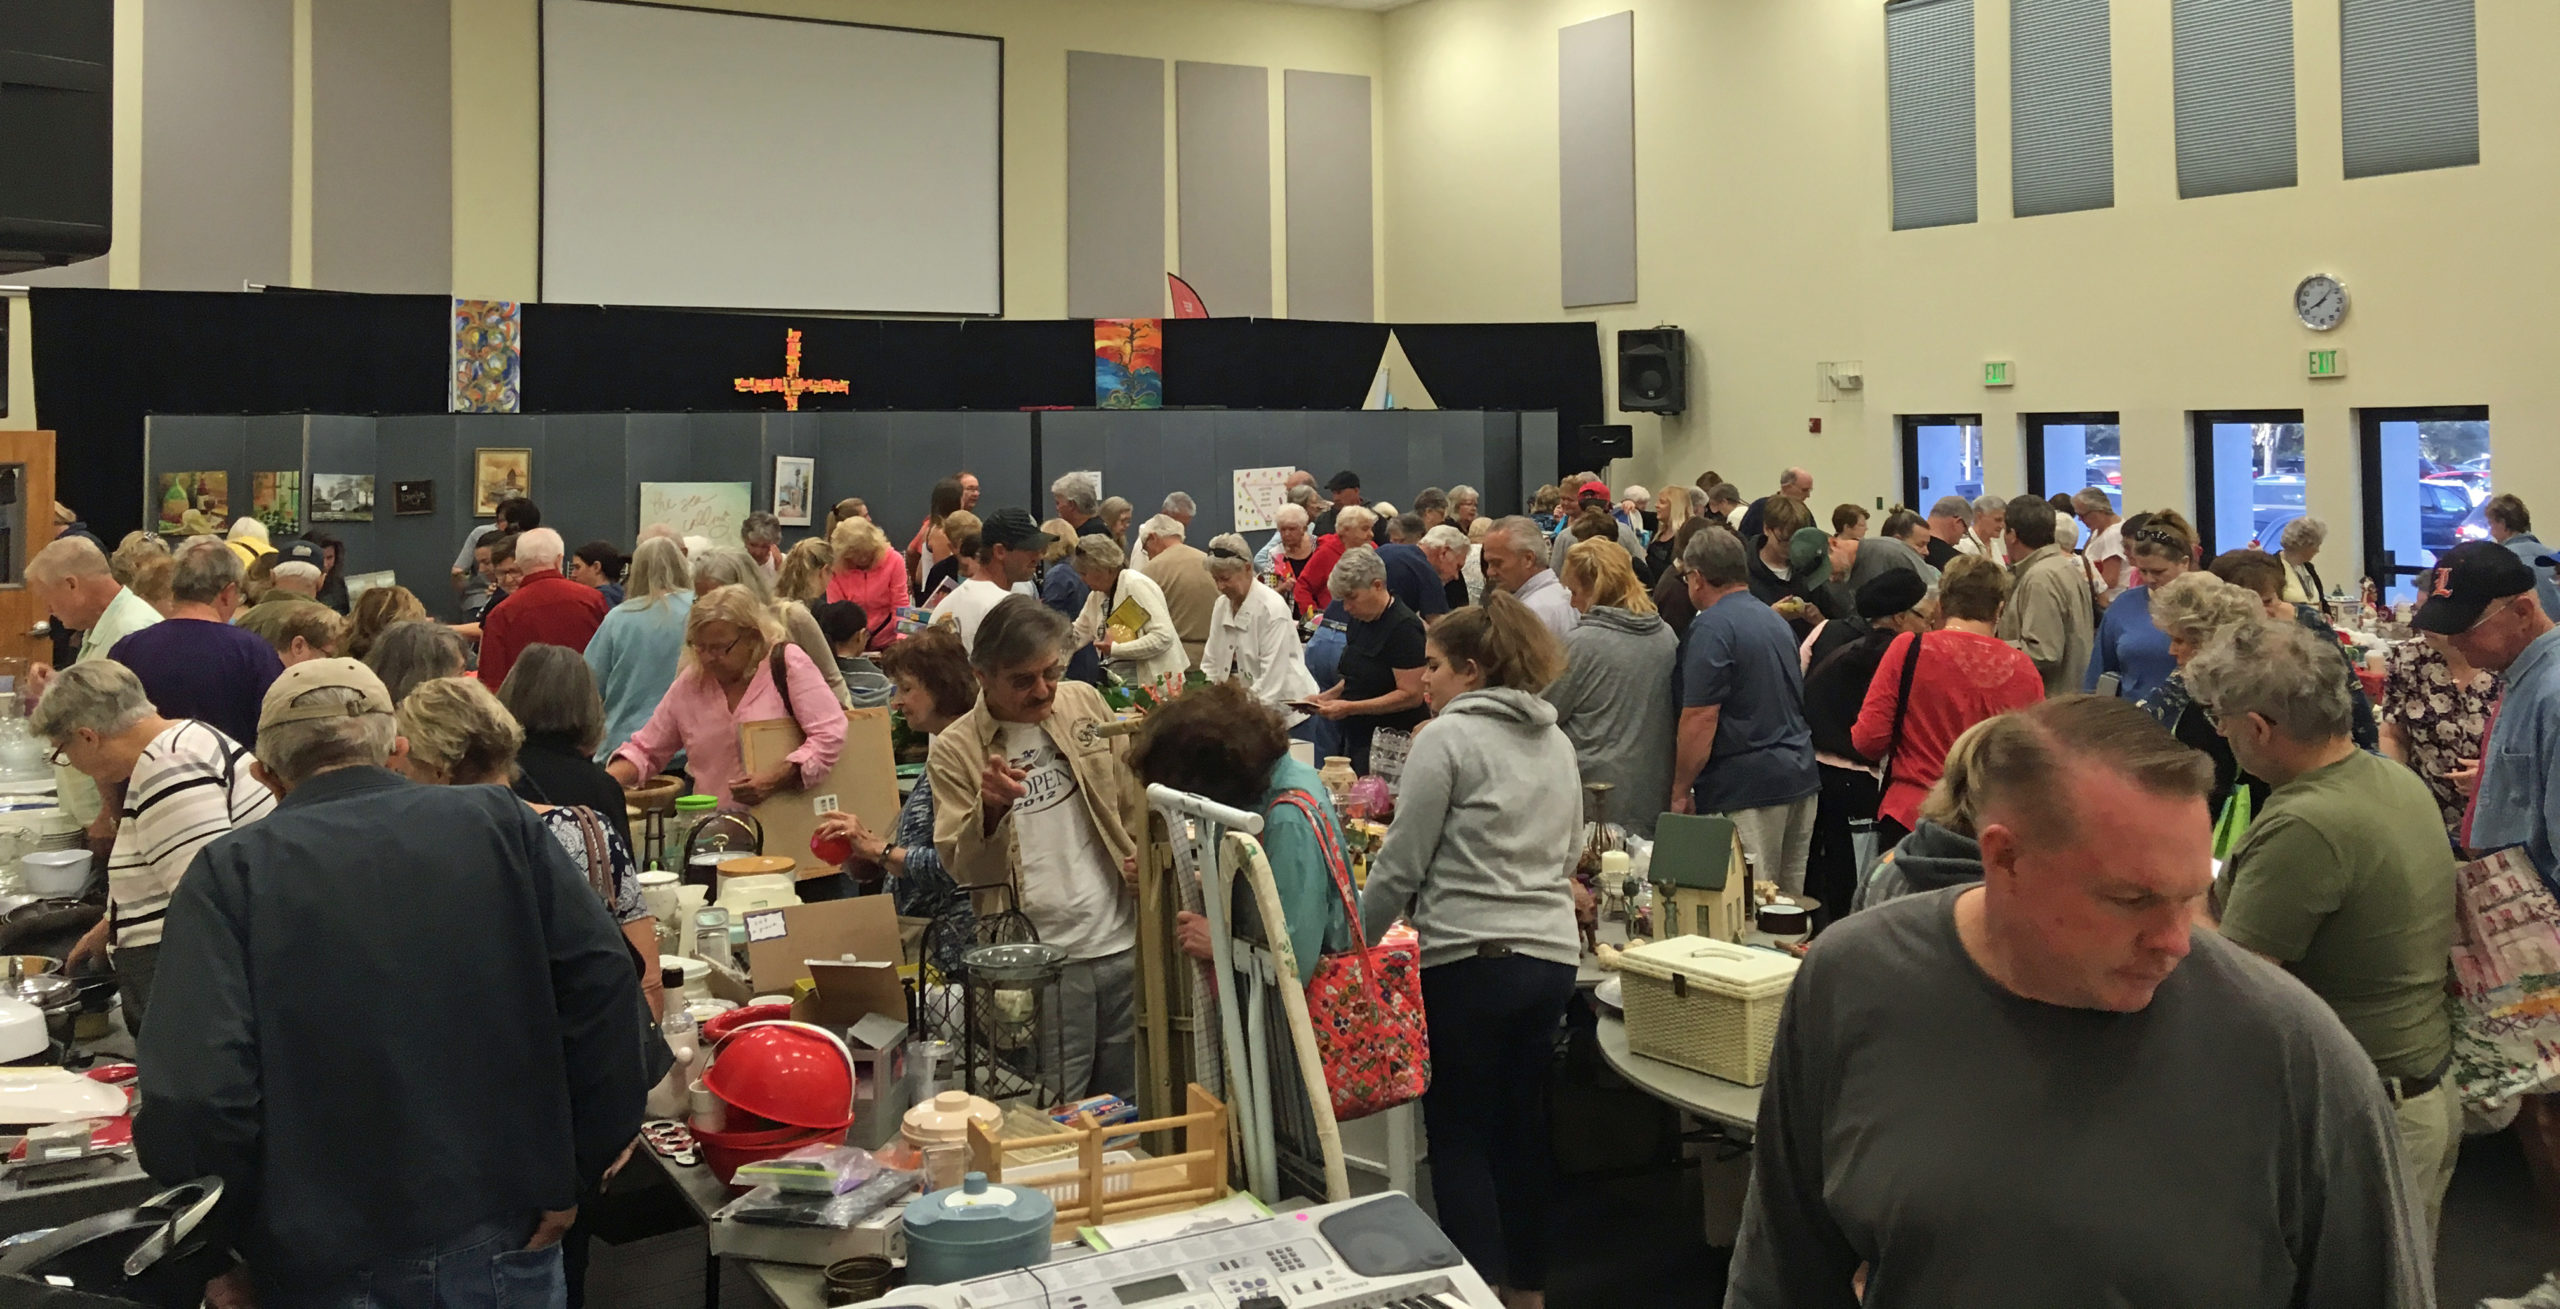 'AWESOME Rummage Sale' at Eastminster Presbyterian Church